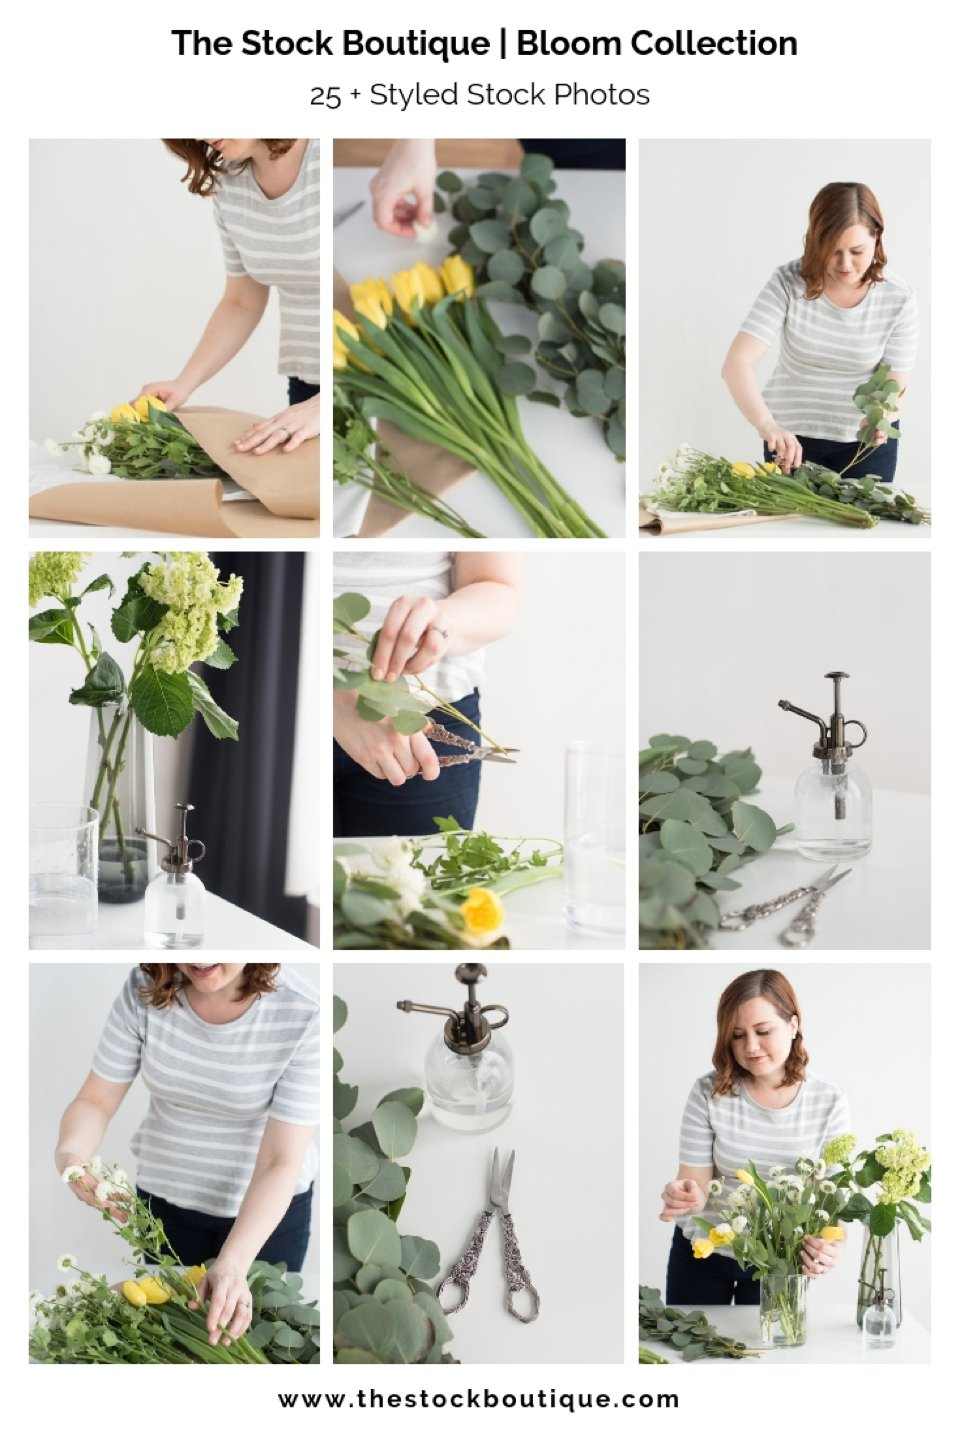 Stock photography for female entrepreneurs. We giveaway a stock photo every month at www.thestockboutique.com.   #stockphoto     #femaleentrepreneur    #smallbusiness